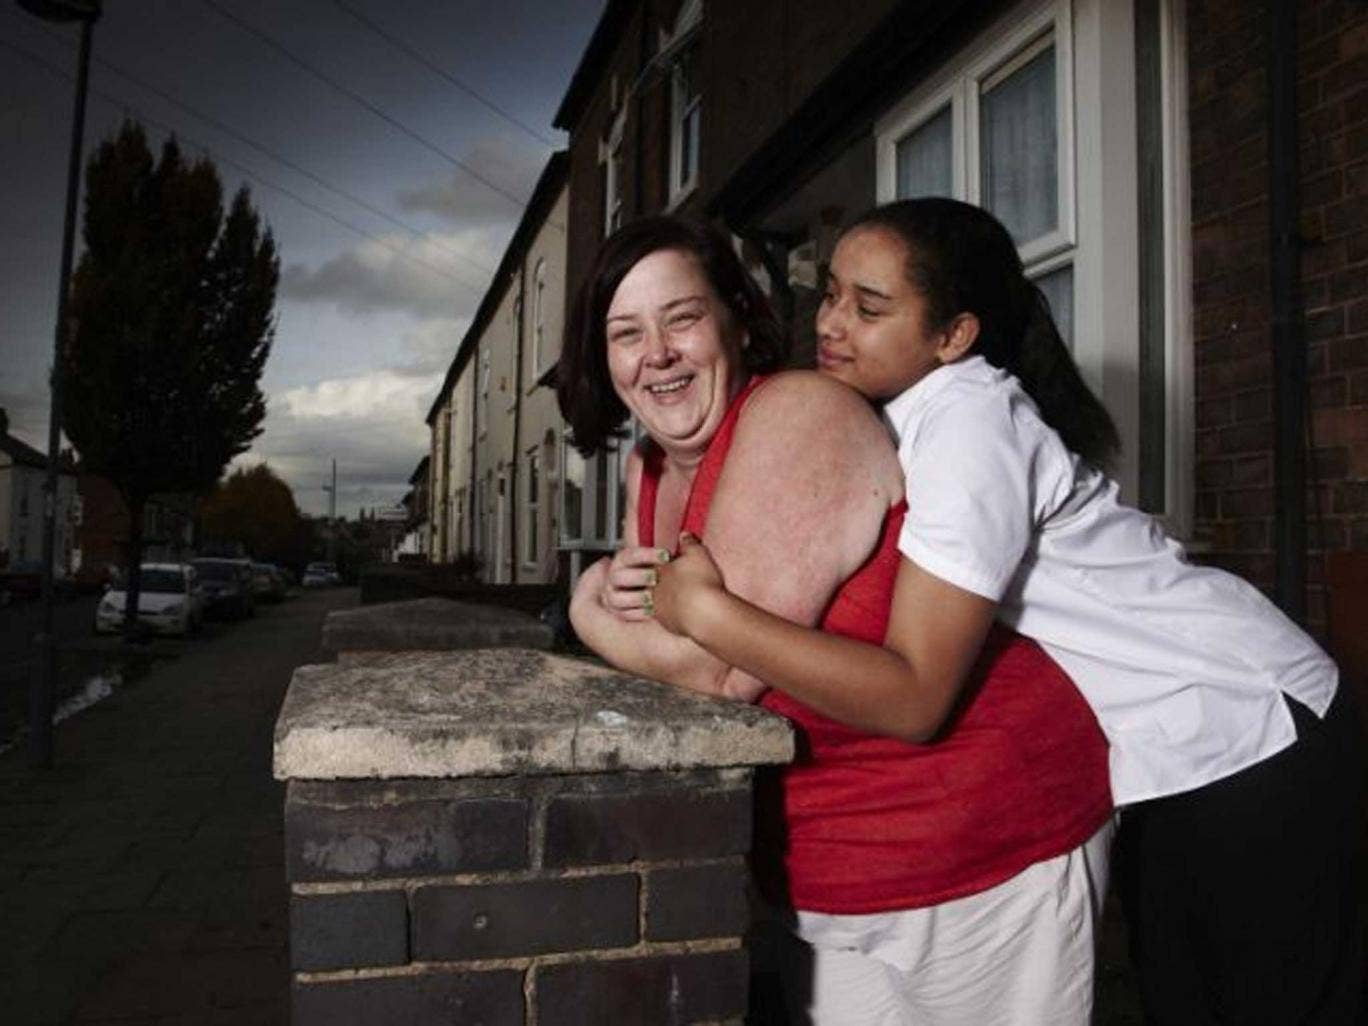 Channel 4's controversial 'Benefits Street' highlights a need for 'regular reviews of standards'